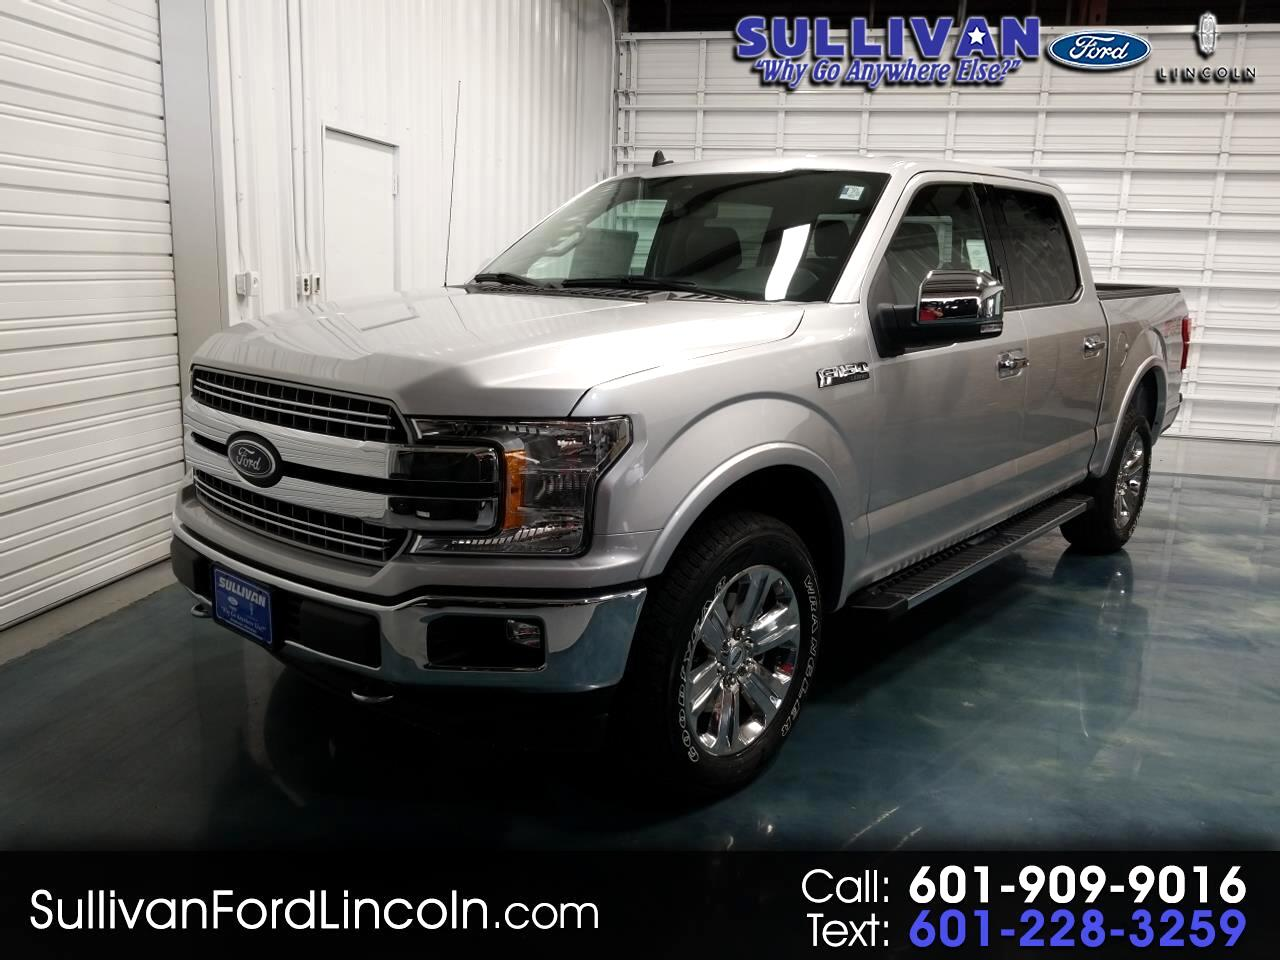 2019 Ford F-150 Lariat 4WD SuperCab 6.5' Box